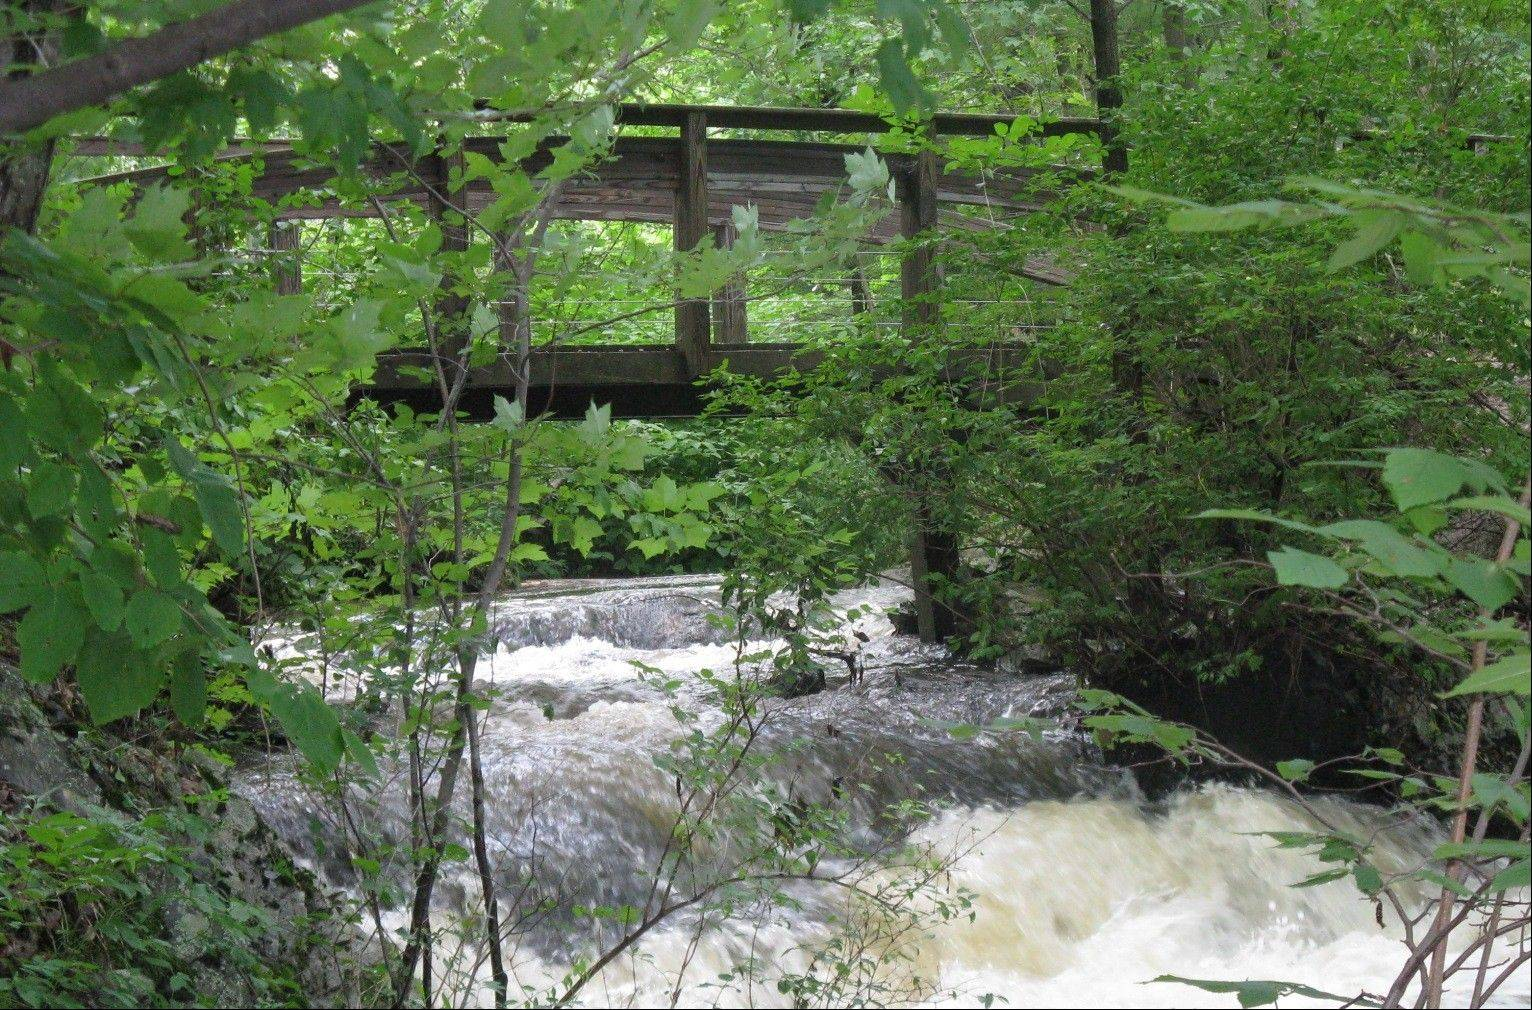 Jewell Falls and the Fore River headwaters bridge in the Fore River Sanctuary is part of 40 miles of free trails in Greater Portland, Maine.